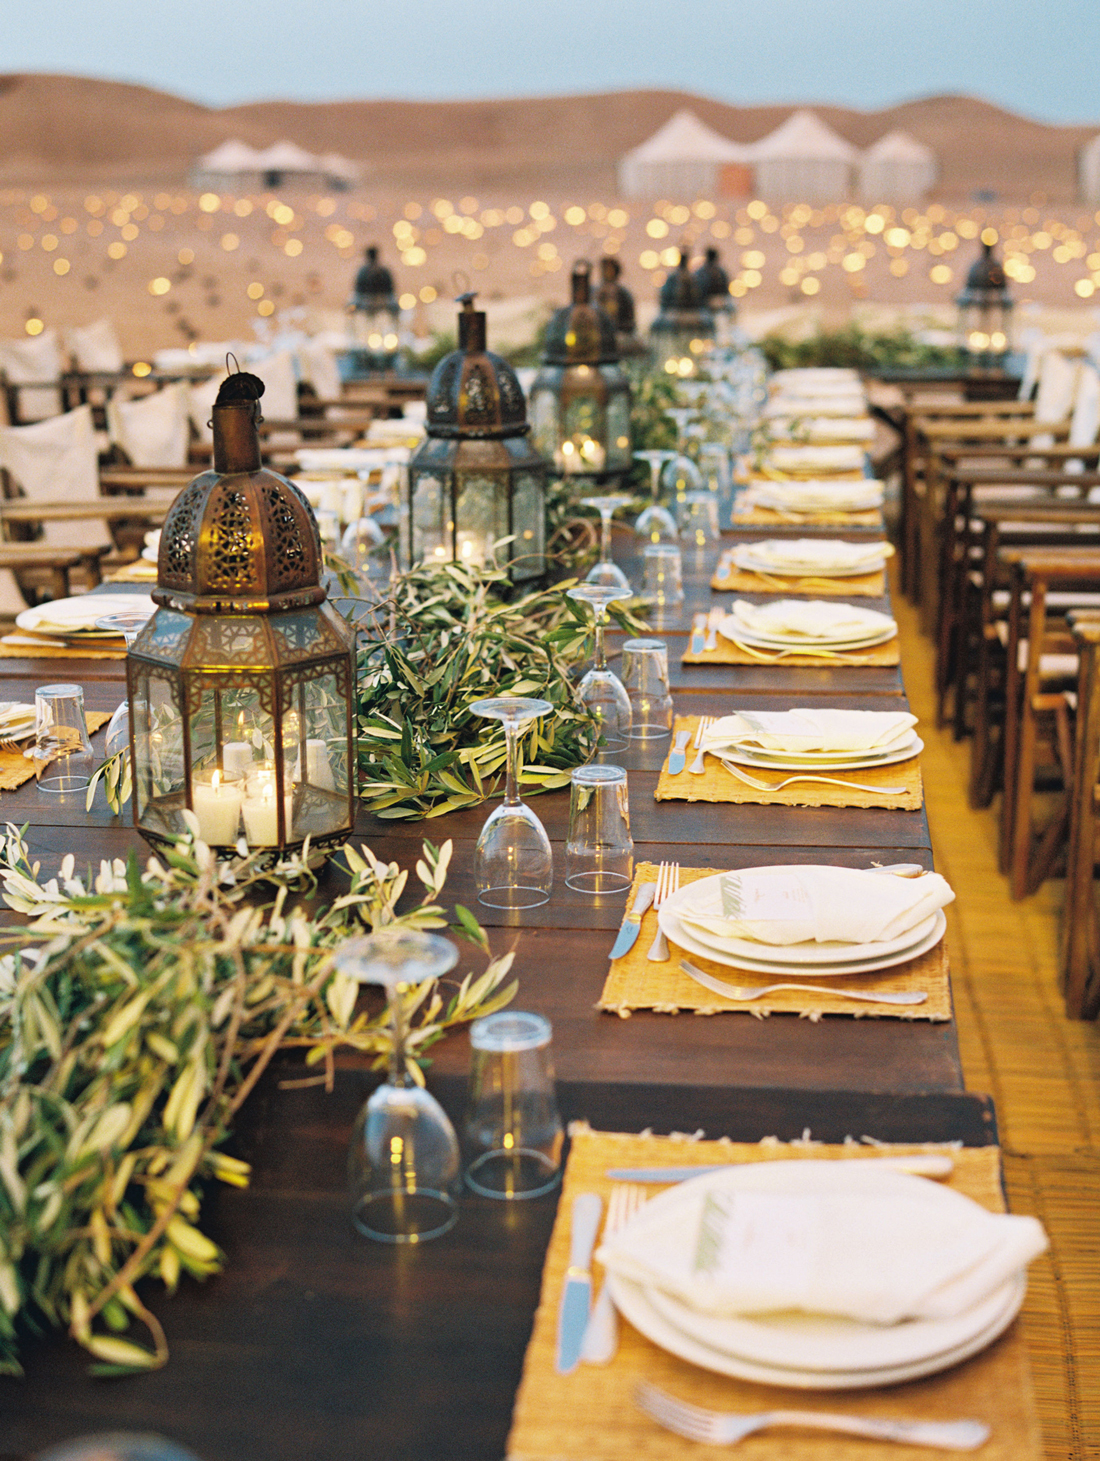 moroccan lantern and greenery centerpieces with woven place mats and white place settings